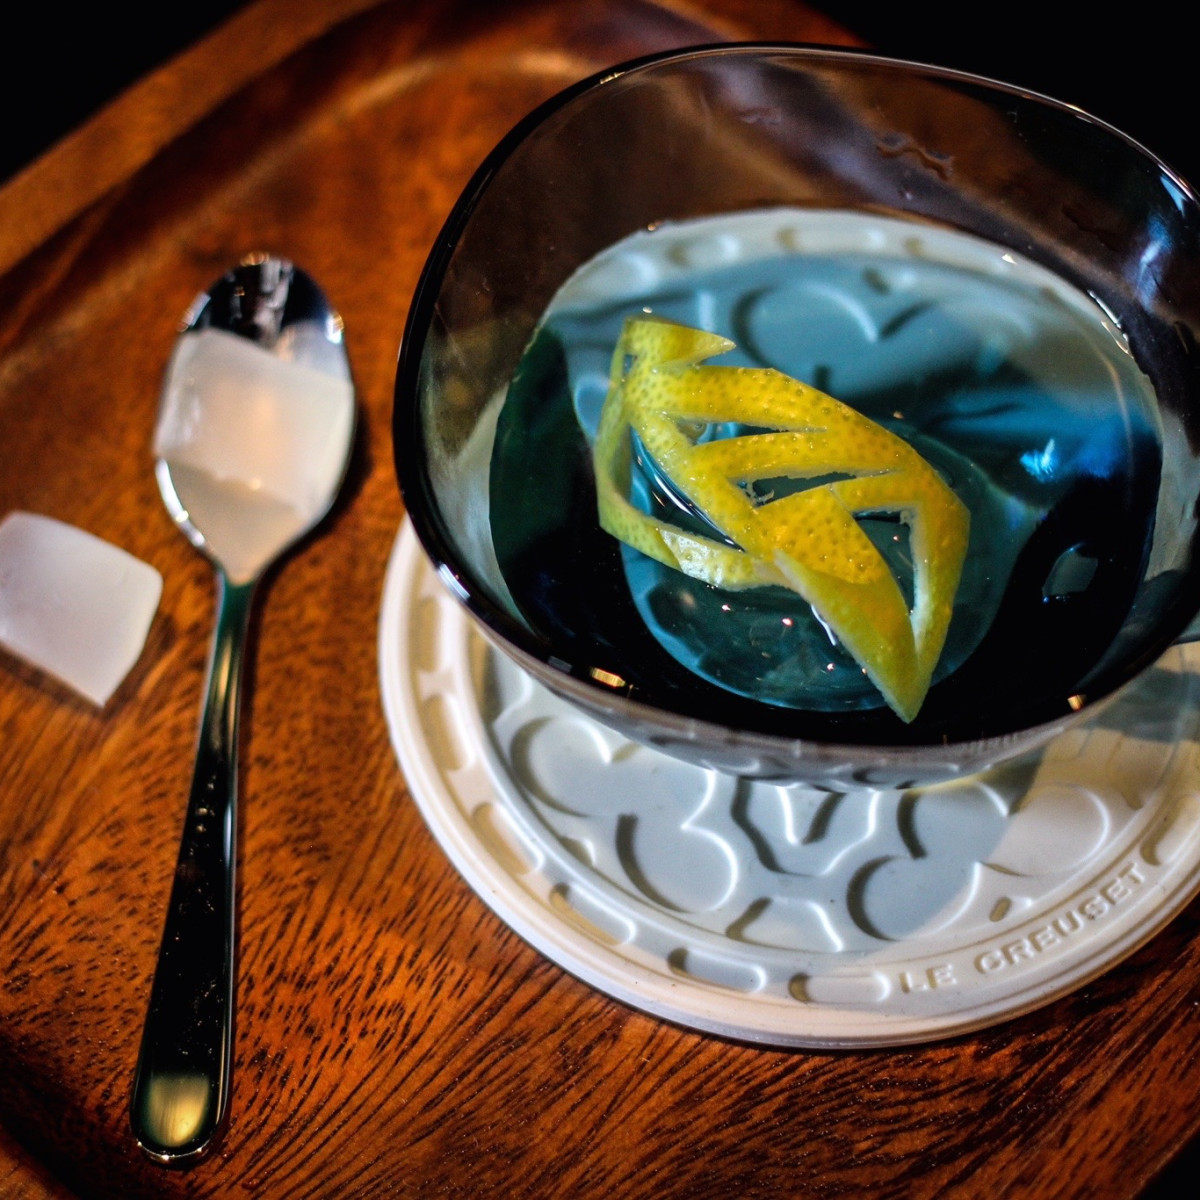 Canard Lyan and Unicorn cocktail